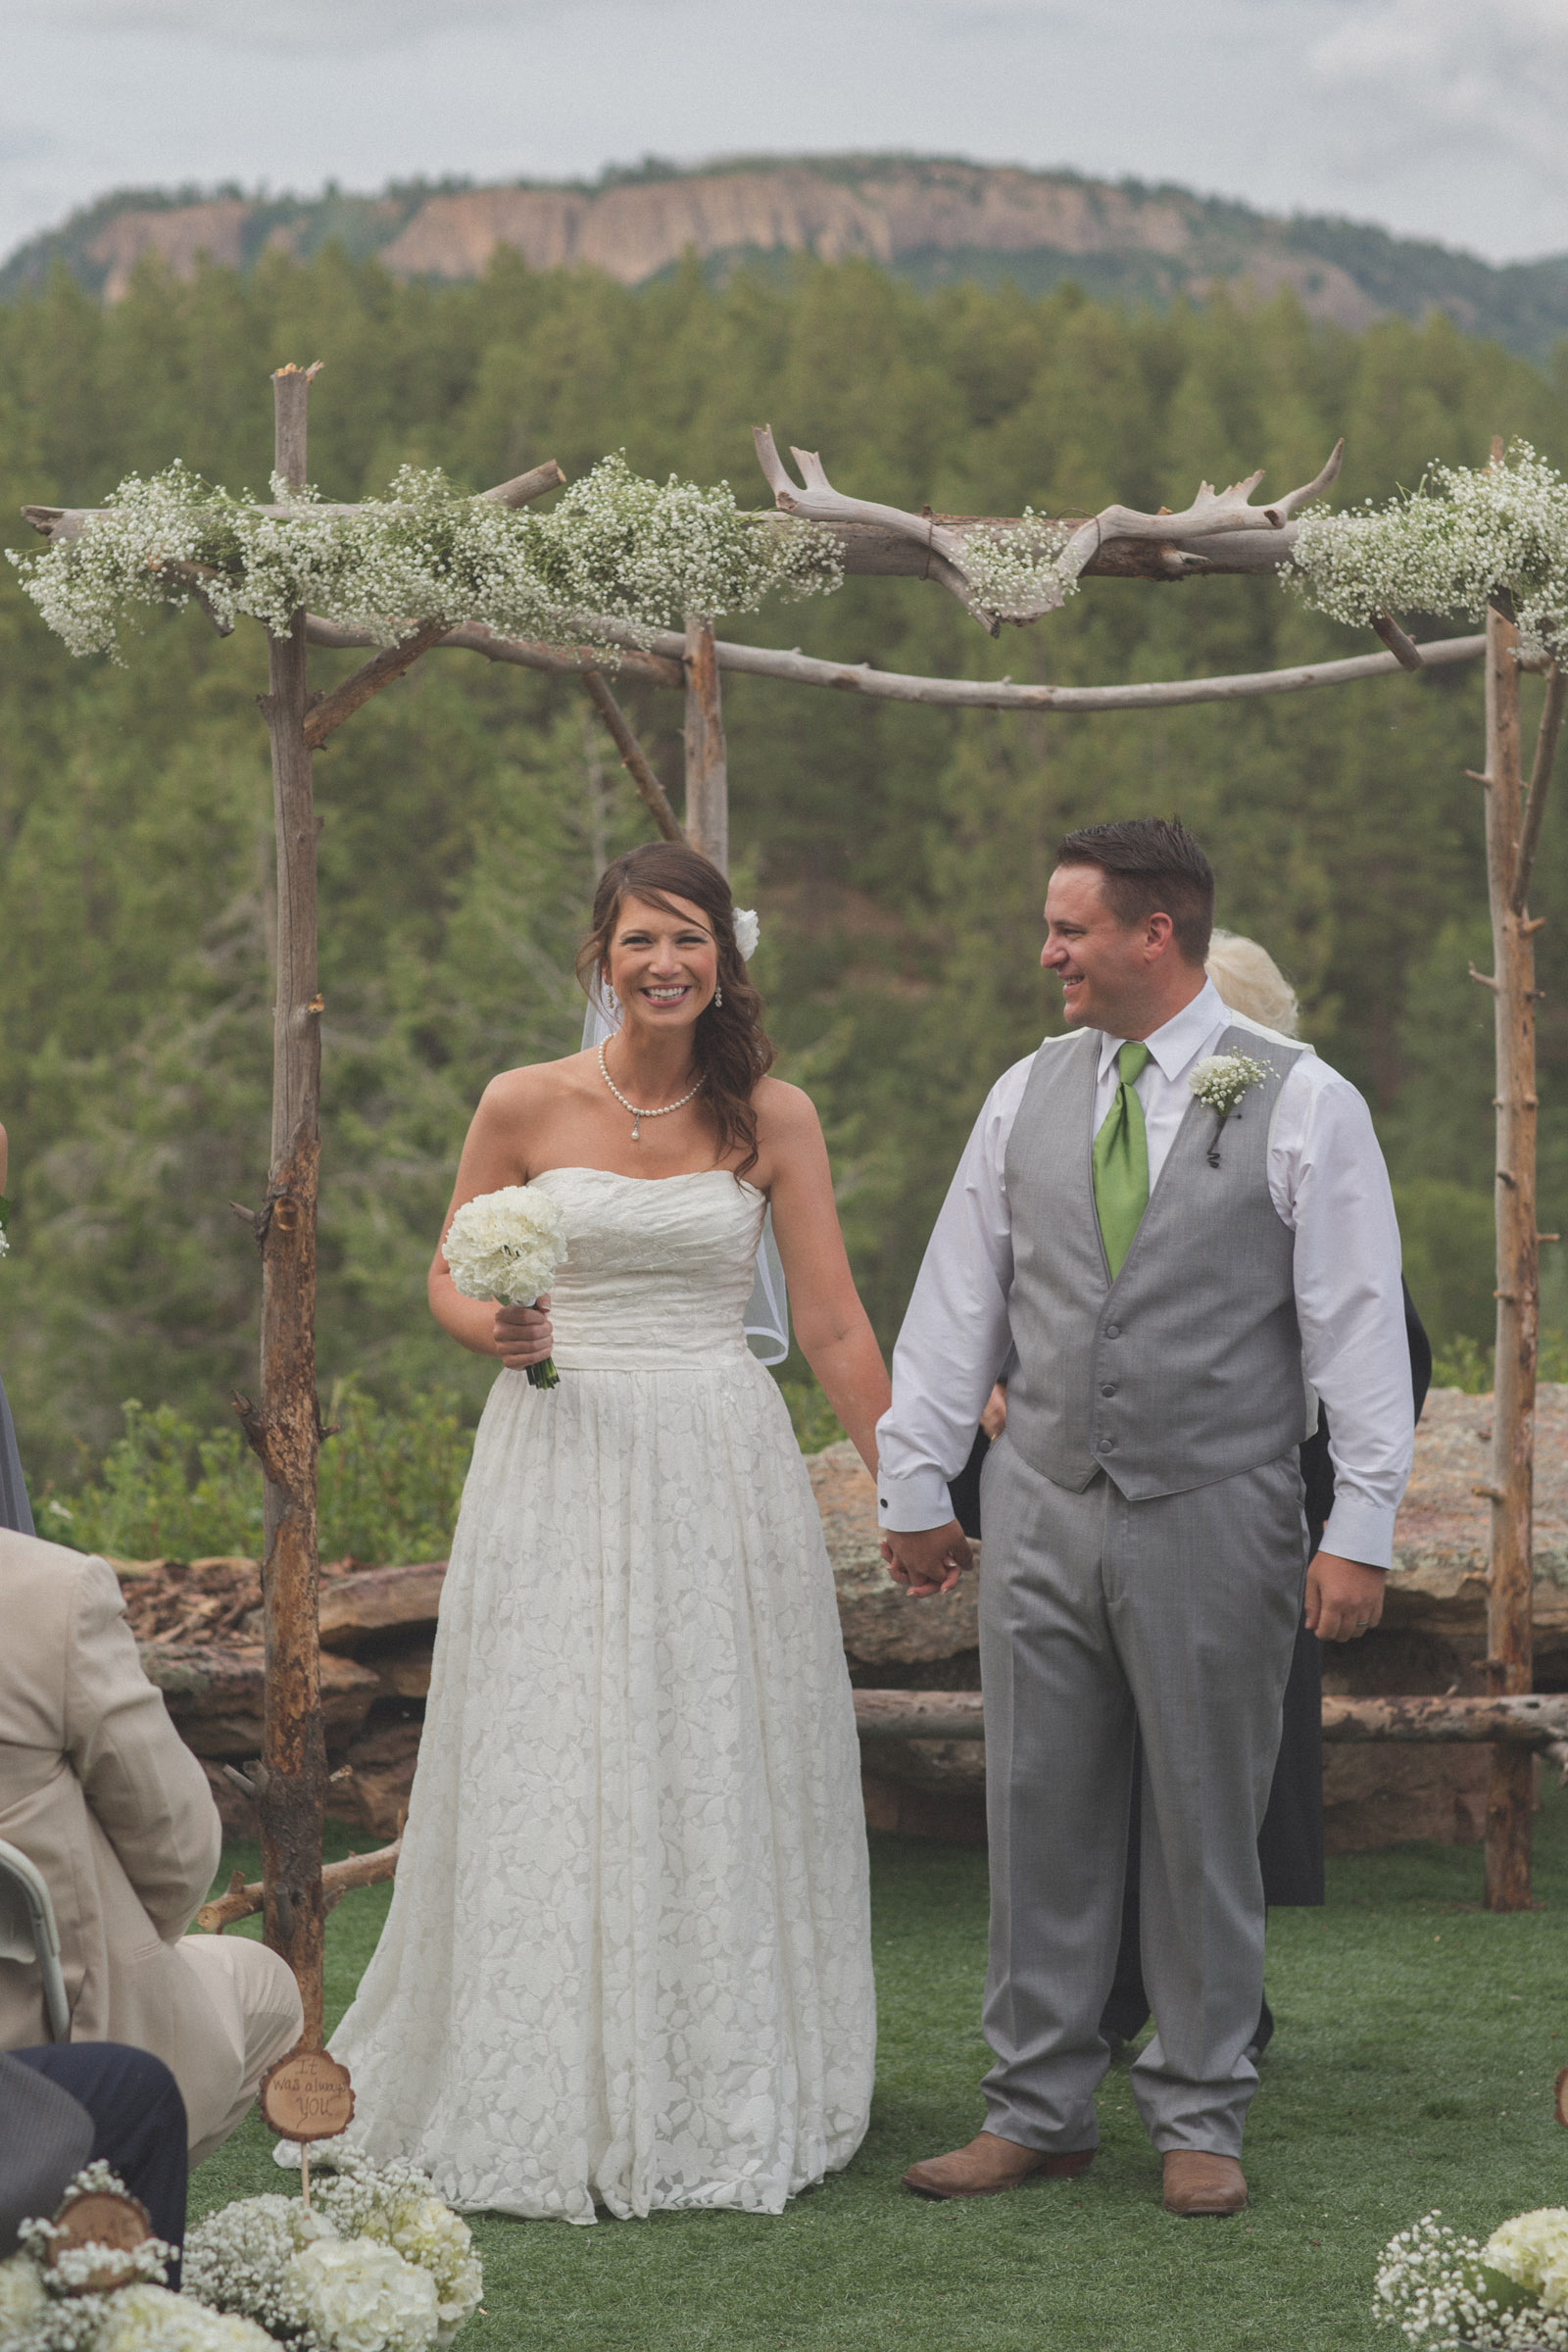 144-wedding-ideas-ideas-wedding-forest-mason-jars-backdrop-colorado-mancos-ceremony-vows